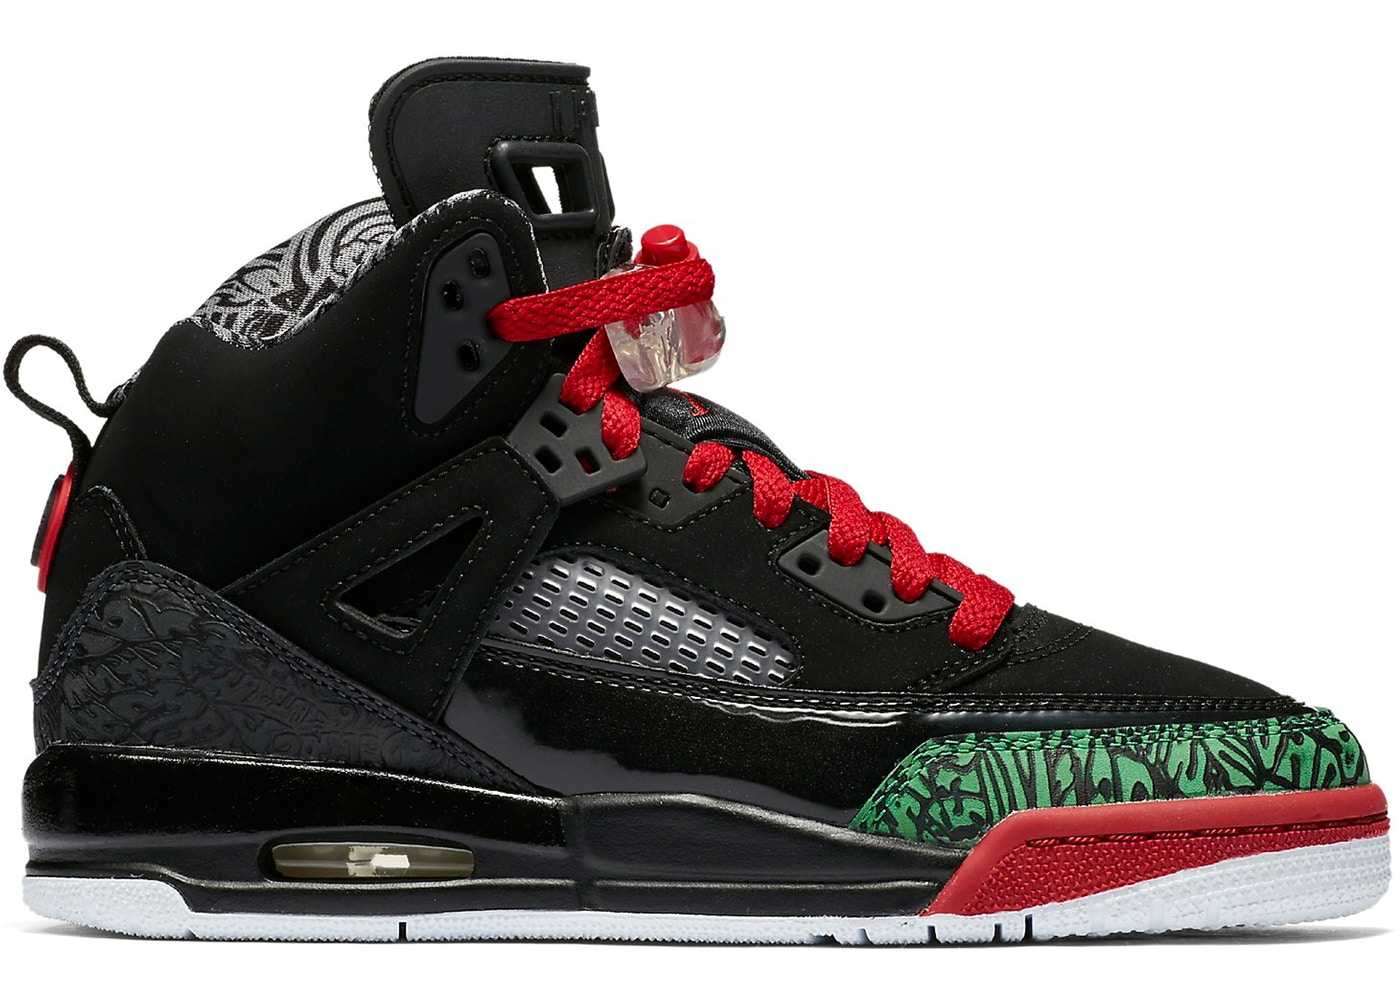 the best attitude 97906 0c4b6 Jordan Spizike Black Varsity Red 2017 (GS) - 317321-026